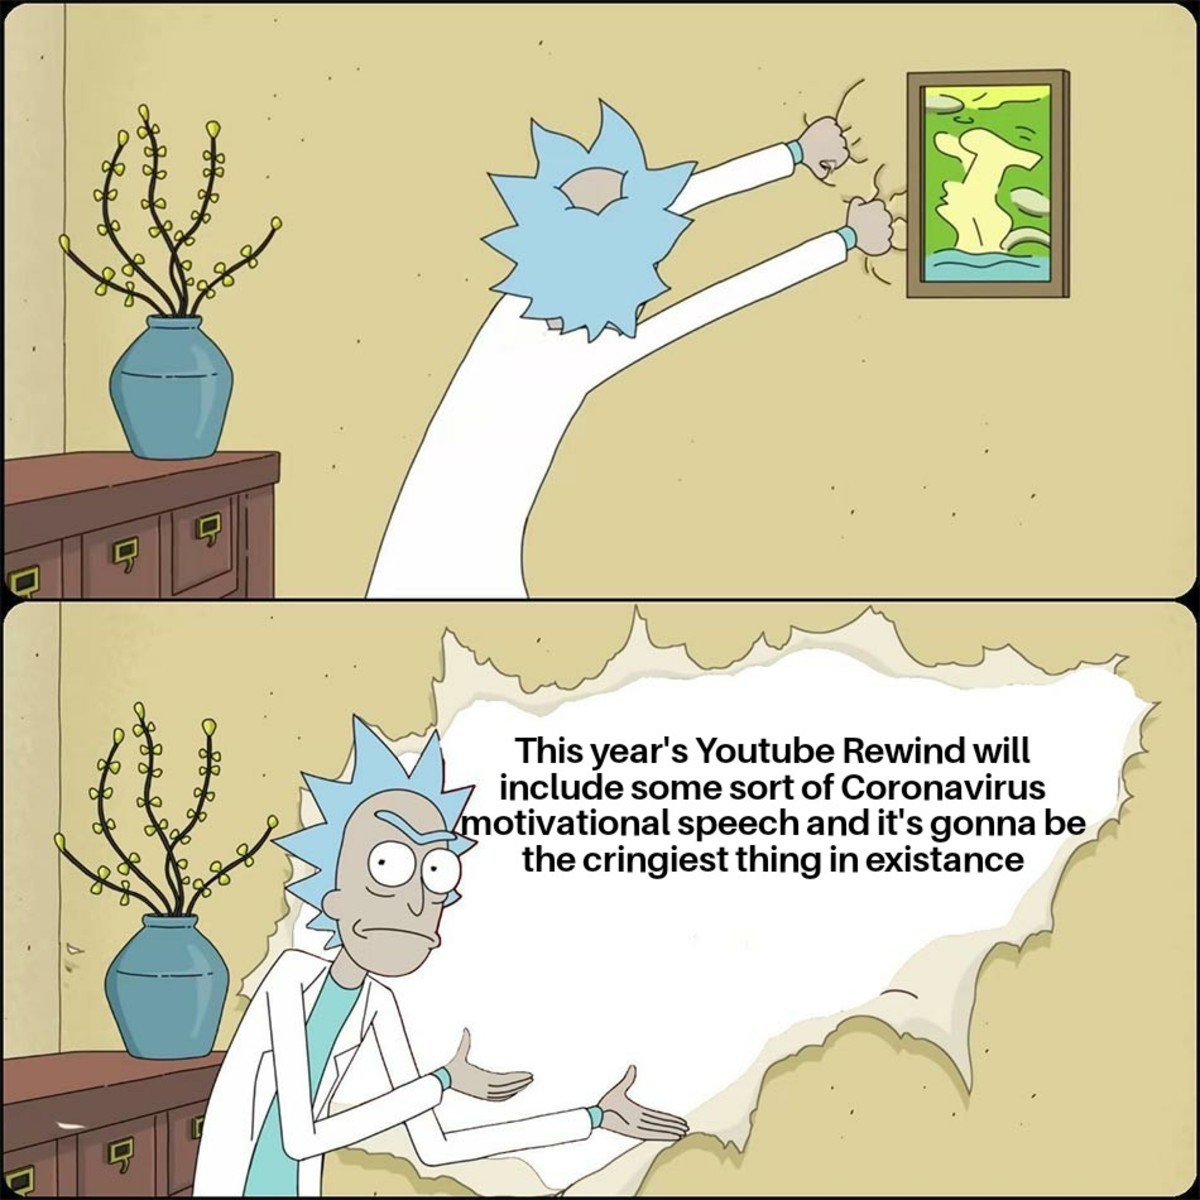 midway overrated Snail. .. Brave of you to assume there will BE a youtube by 2021